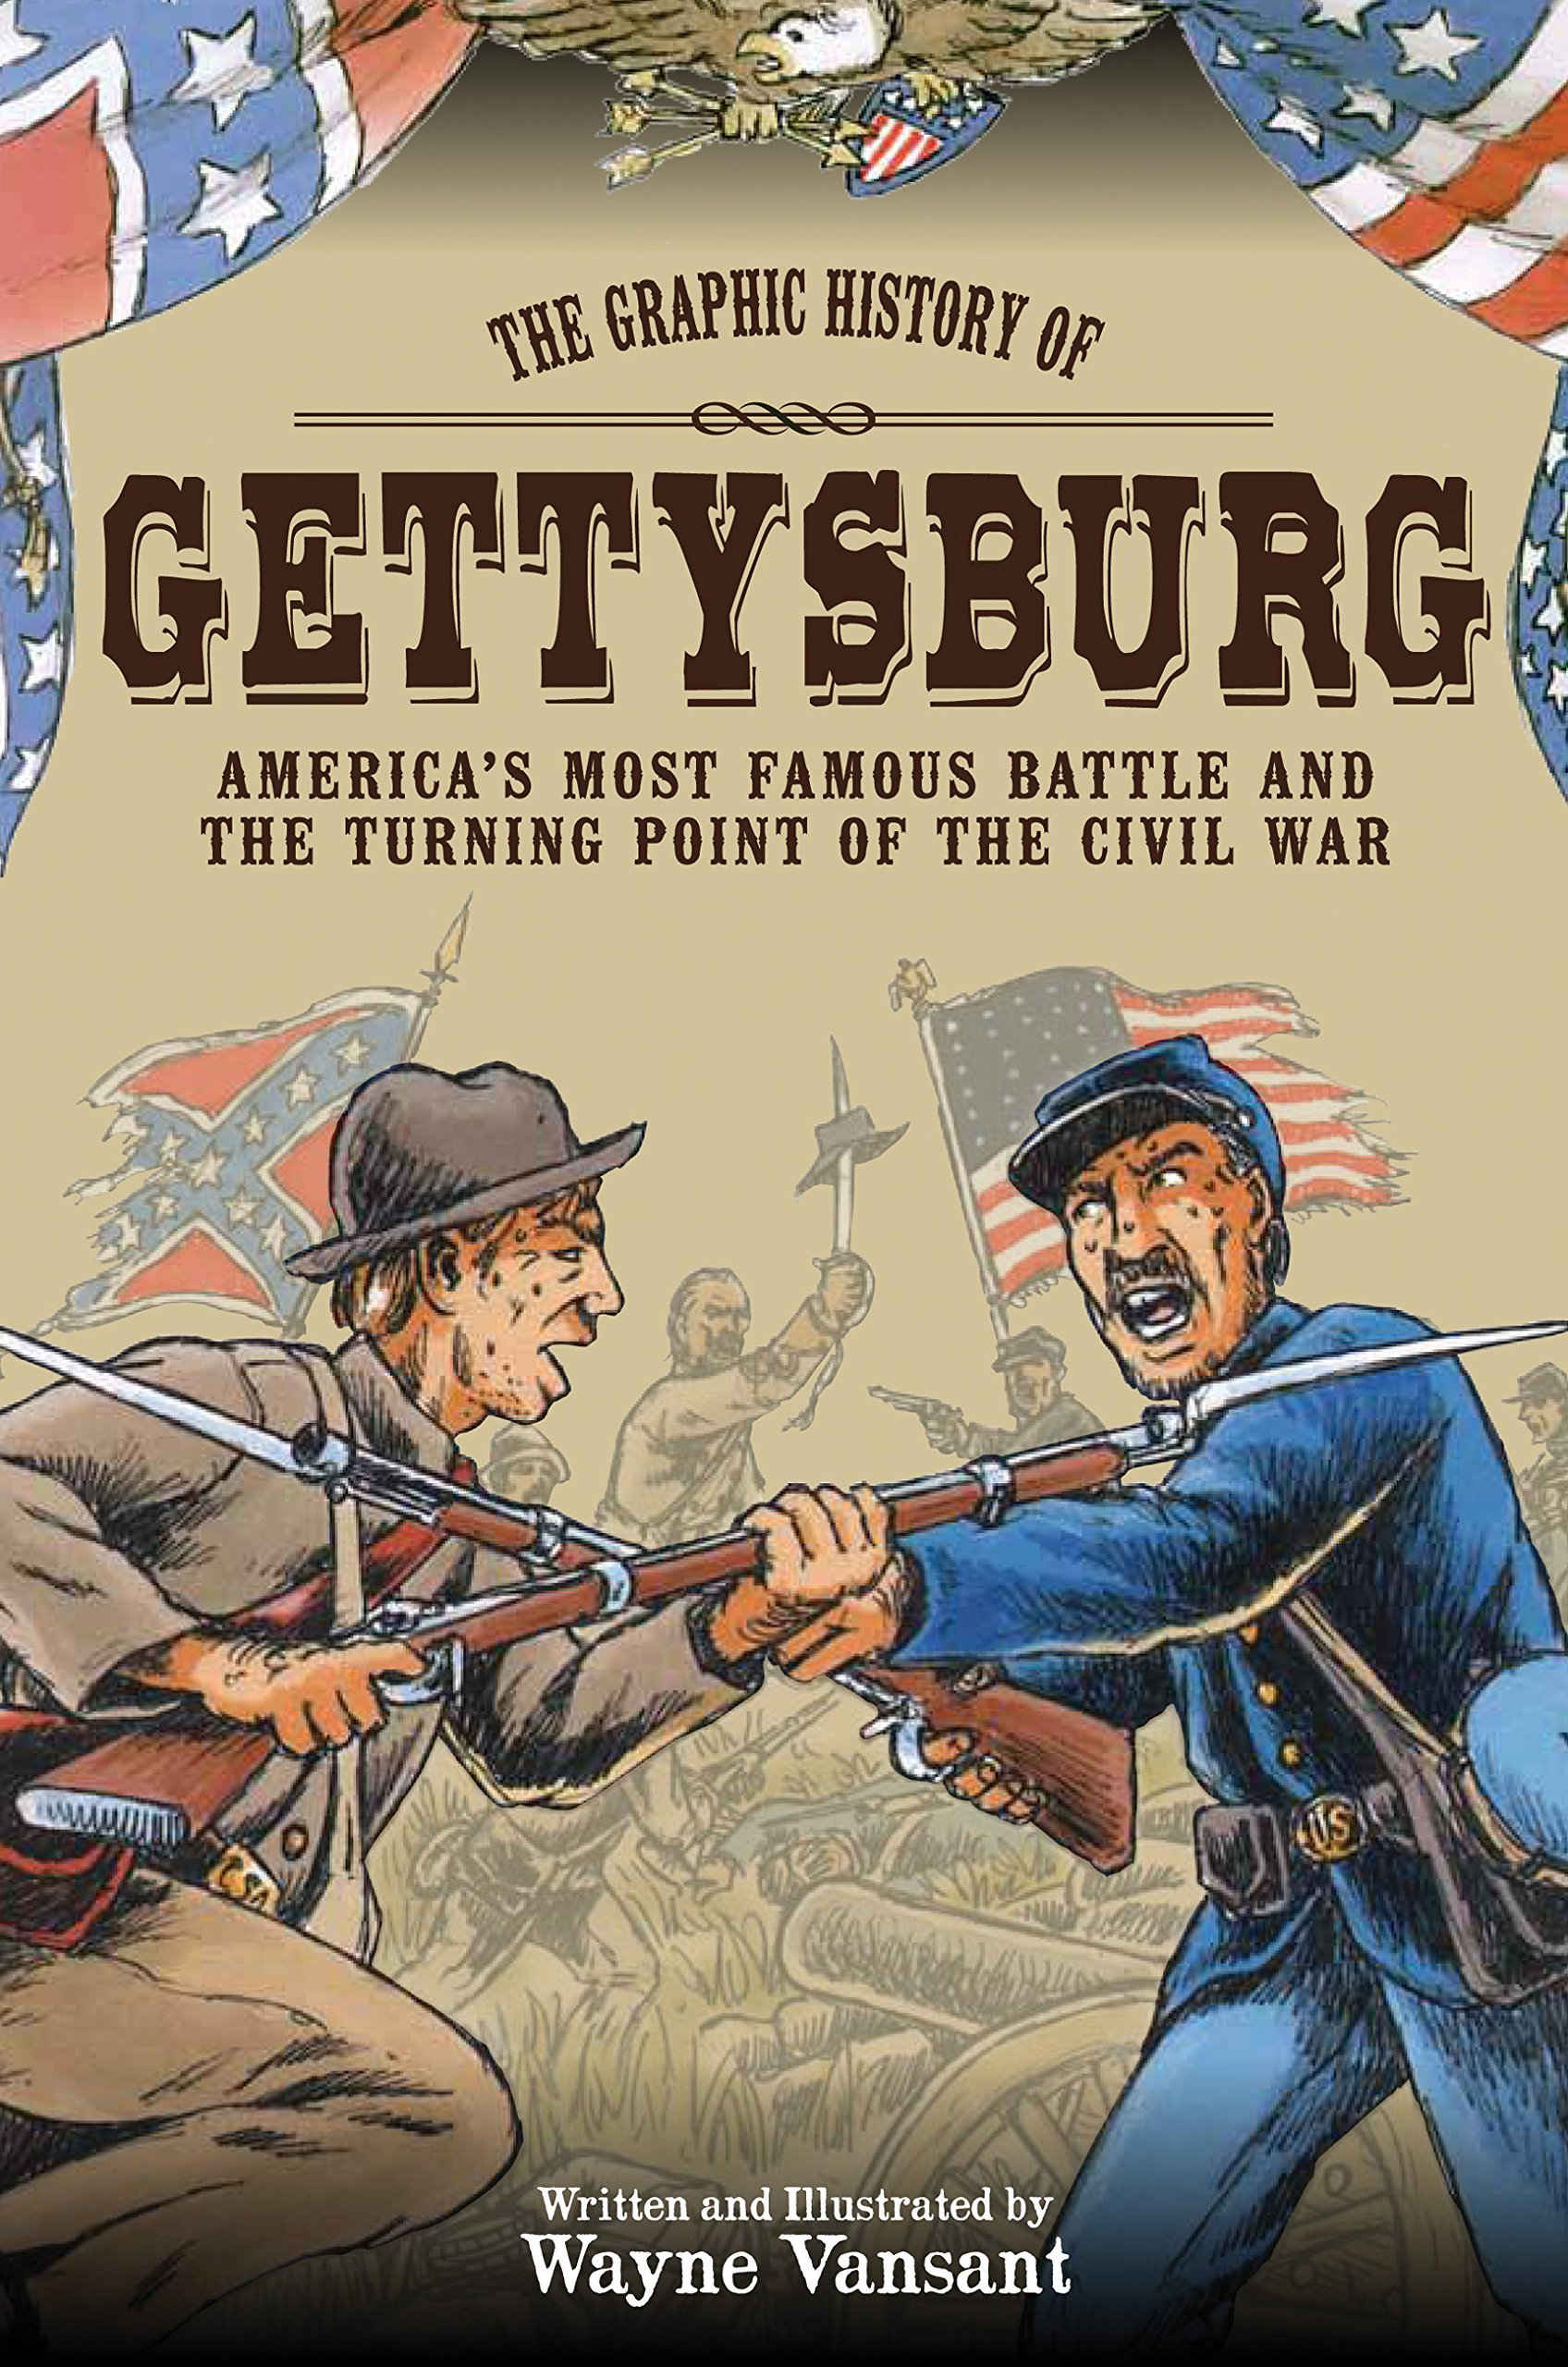 Gettysburg: The Graphic History of America's Most Famous Battle and the Turning Point of The Civil War (Zenith Graphic Histories) ebook